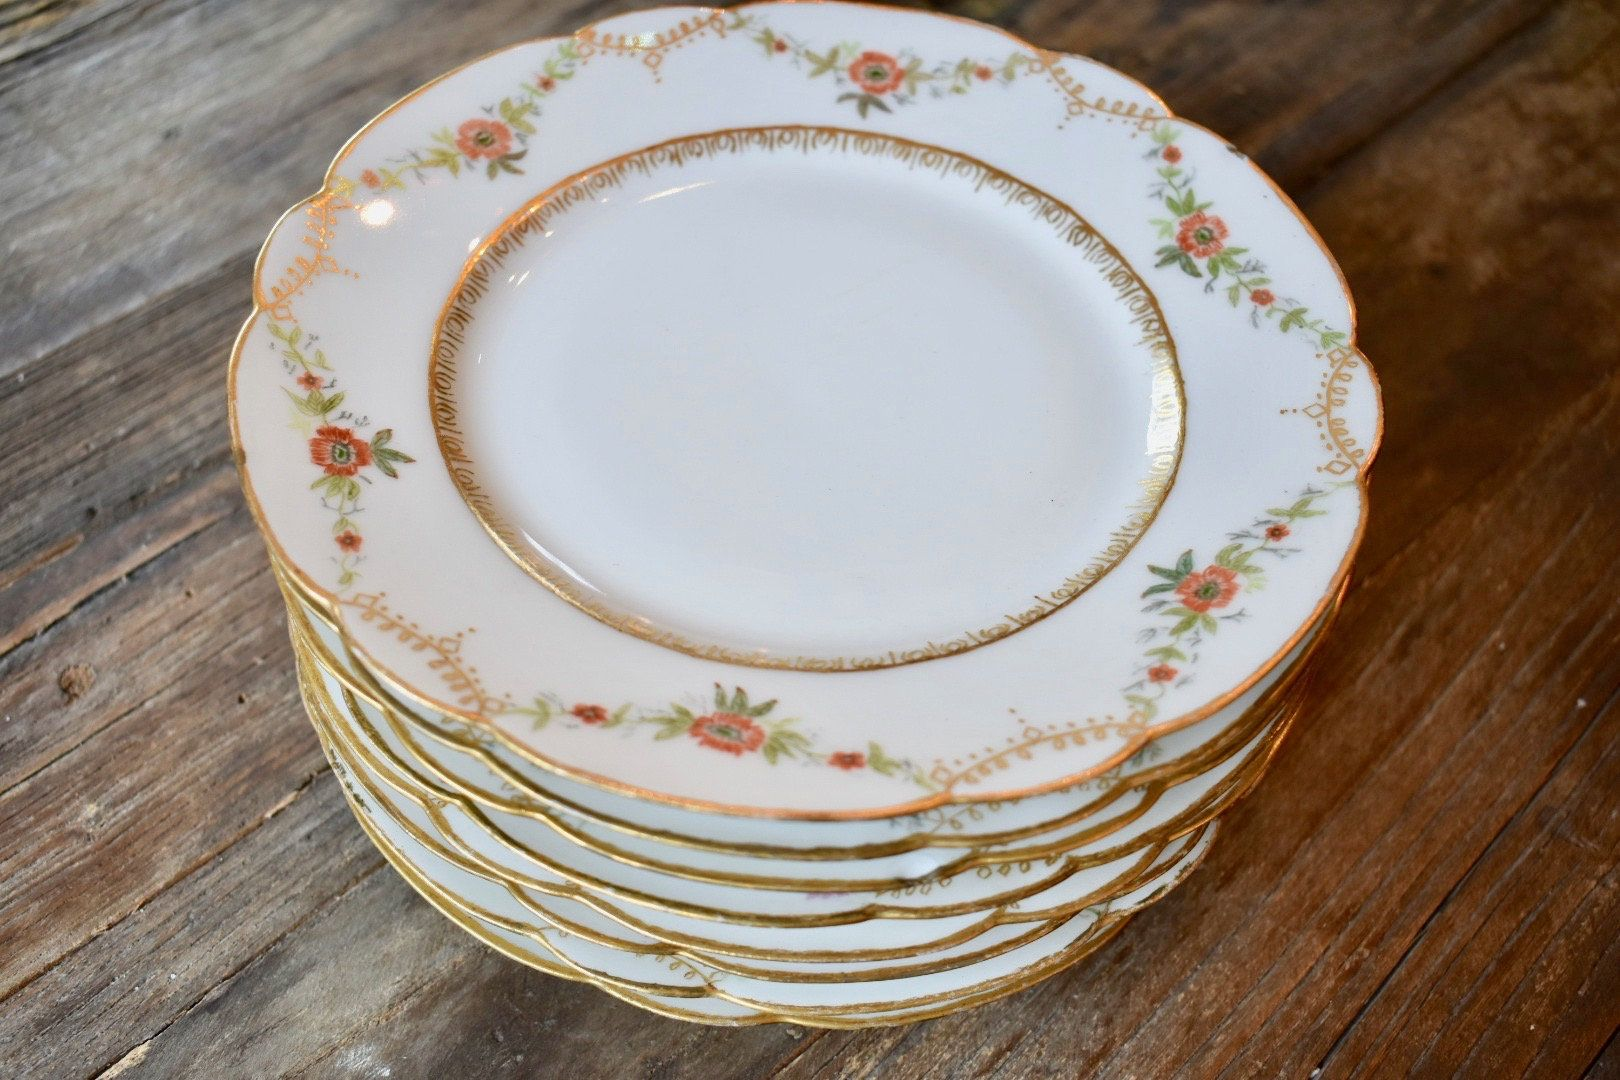 Haviland Limoges China Plates H and C